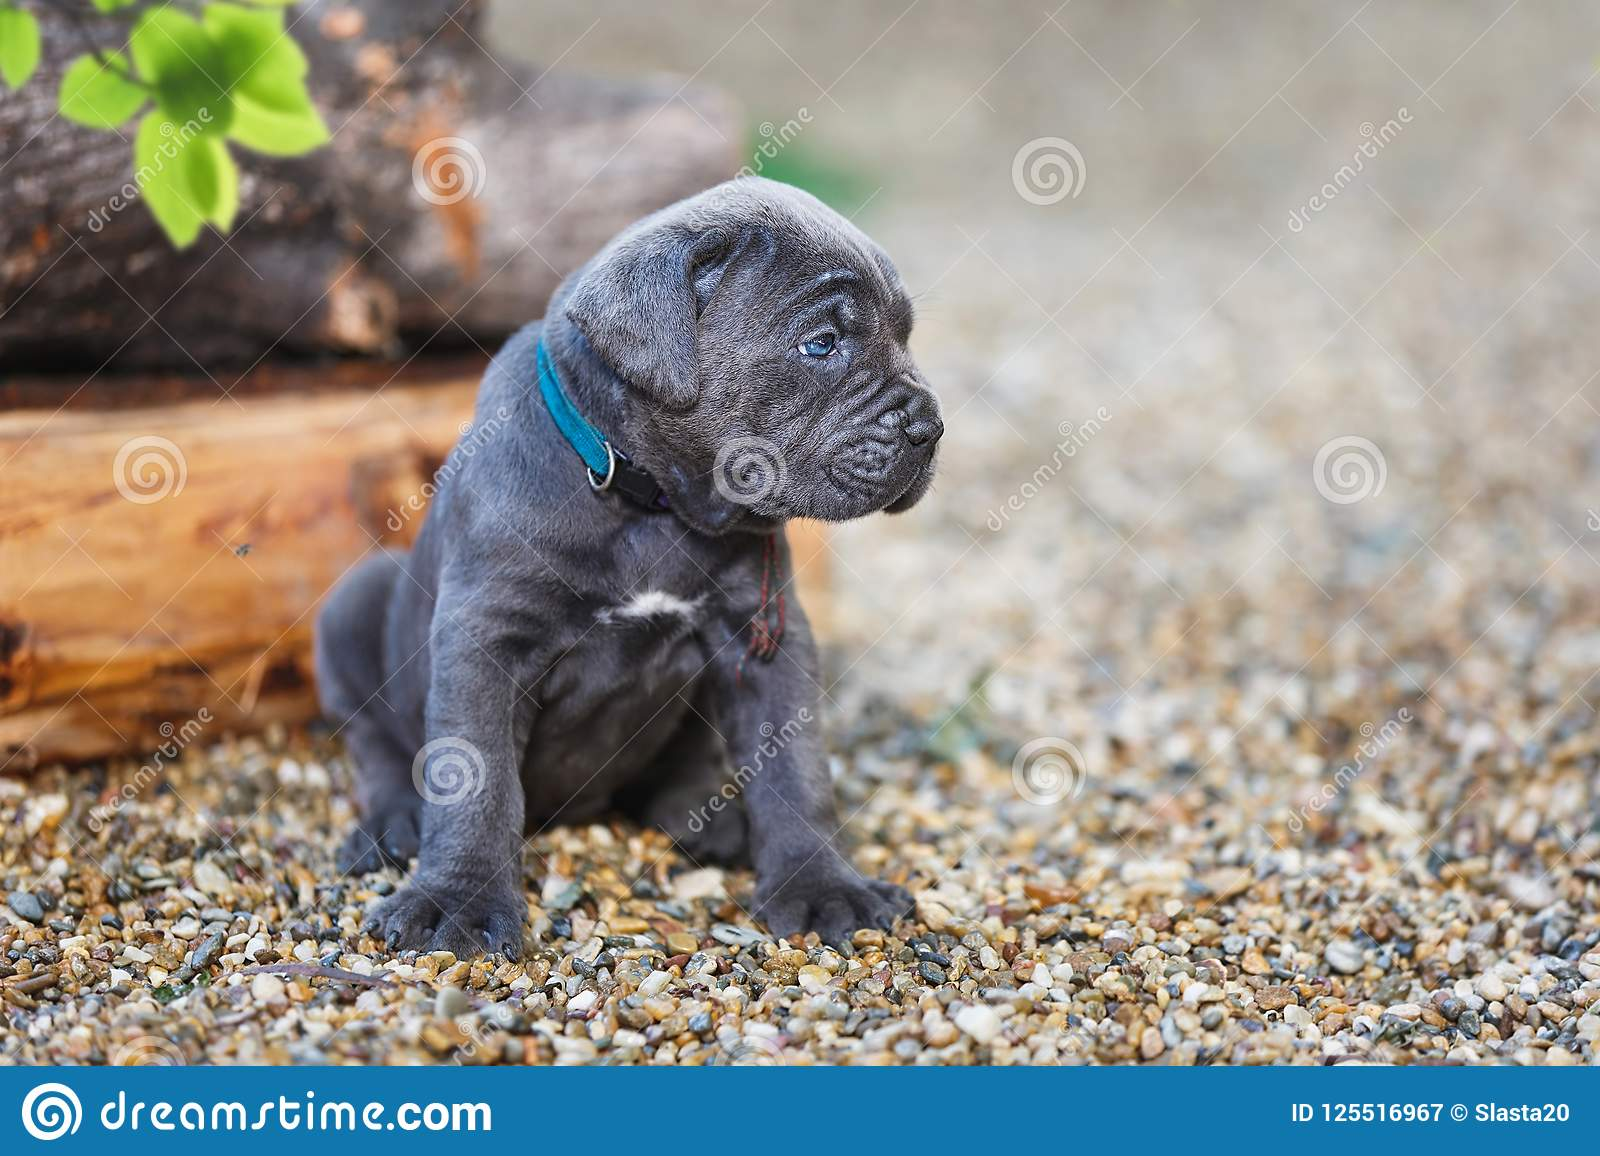 Cute Cane Corso Puppy With Blue Eyes Sitting In Sunny Garden Stock